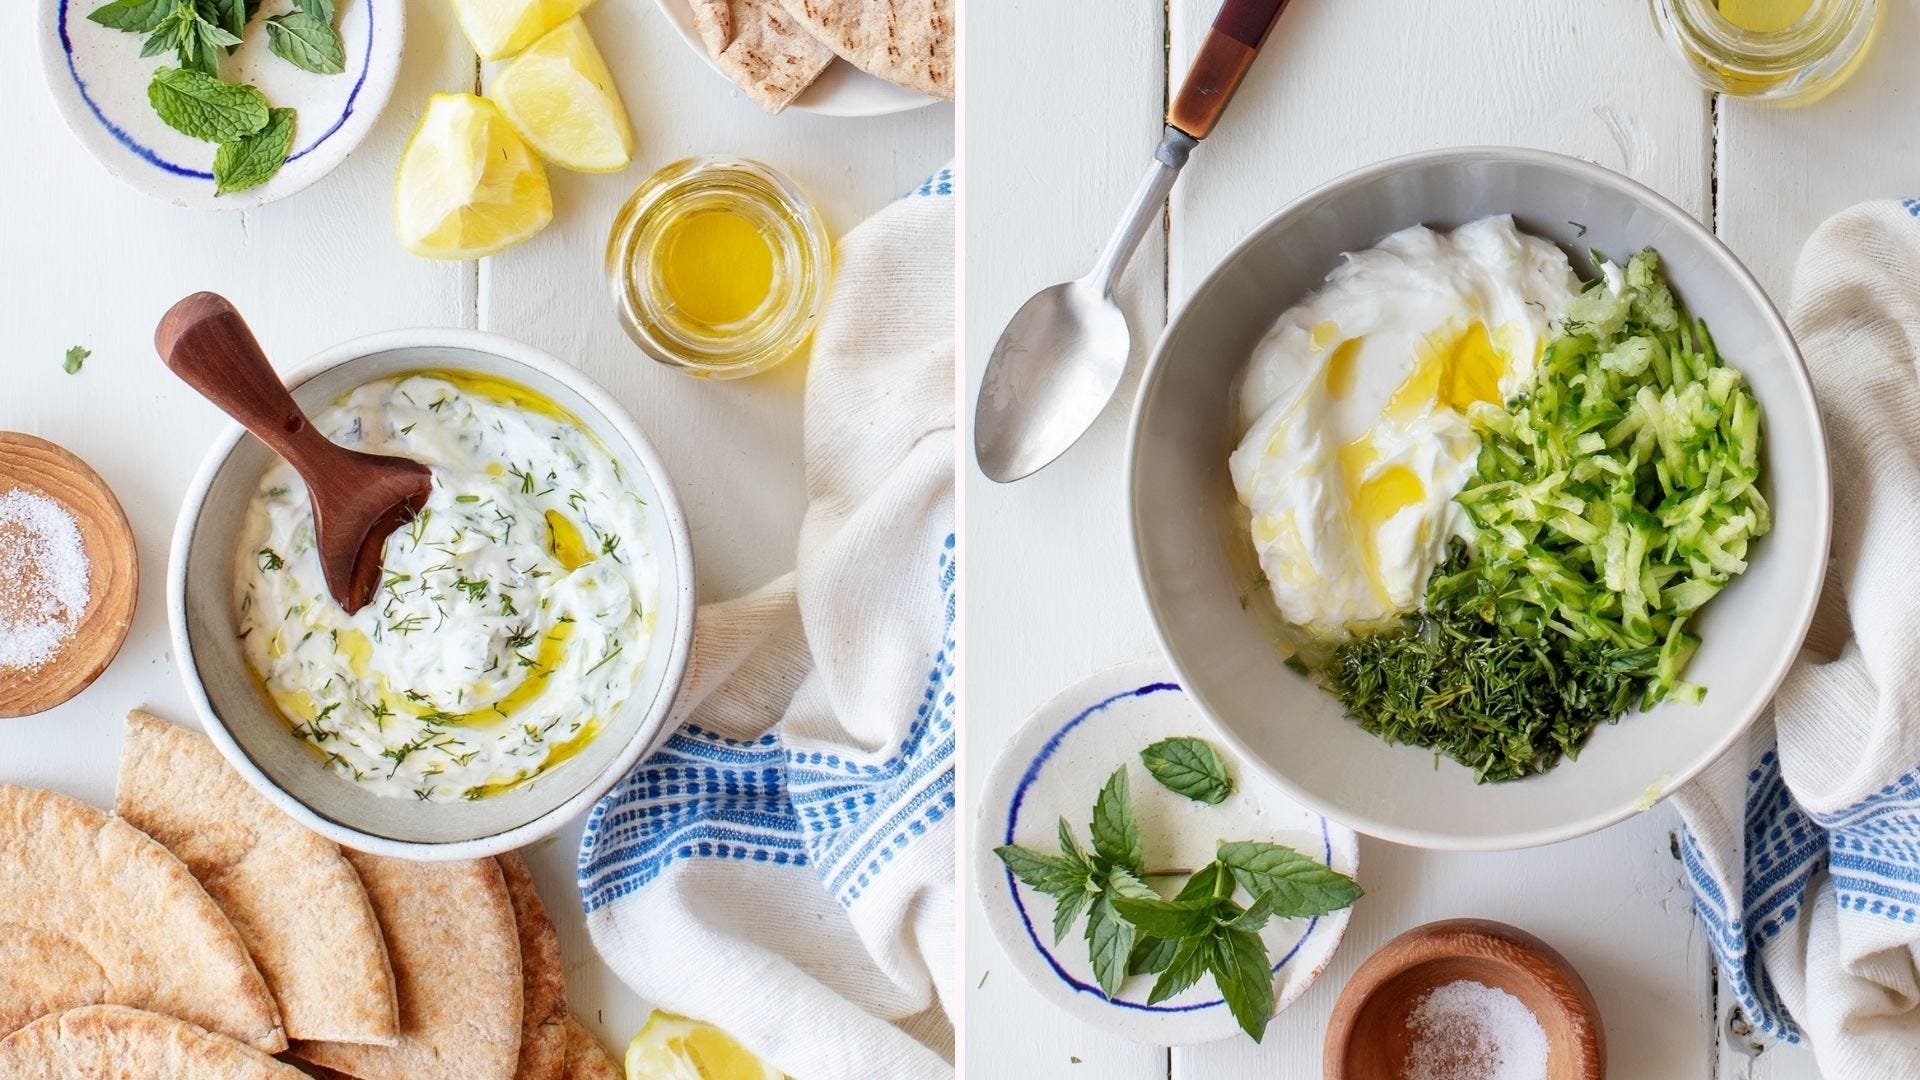 Two images: The left image is of a freshly made bowl of homemade tzatziki sauce surrounded by various ingredients like lemon wedges, olive oil, pita bread and milk leaves. The right image is of a bowl of ingredients to make tzatziki sauce, ready to be mixed.